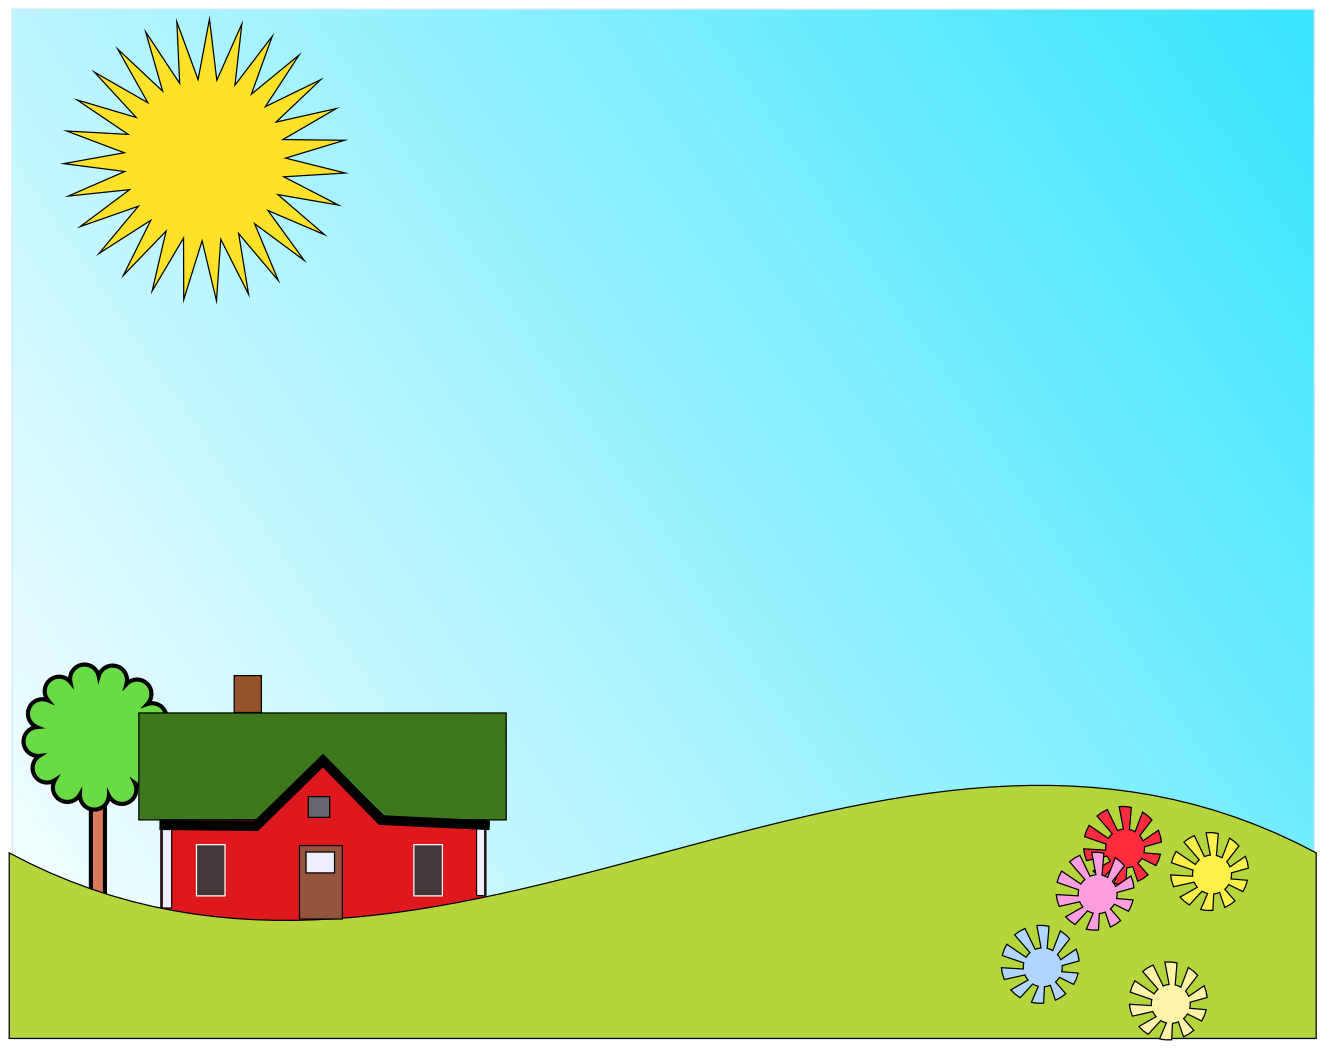 Png Sunny Day Cartoon 1920 X 1080 114 Kb-Png Sunny Day Cartoon 1920 X 1080 114 Kb Jpeg Sunny Day Cartoon 600 X-11